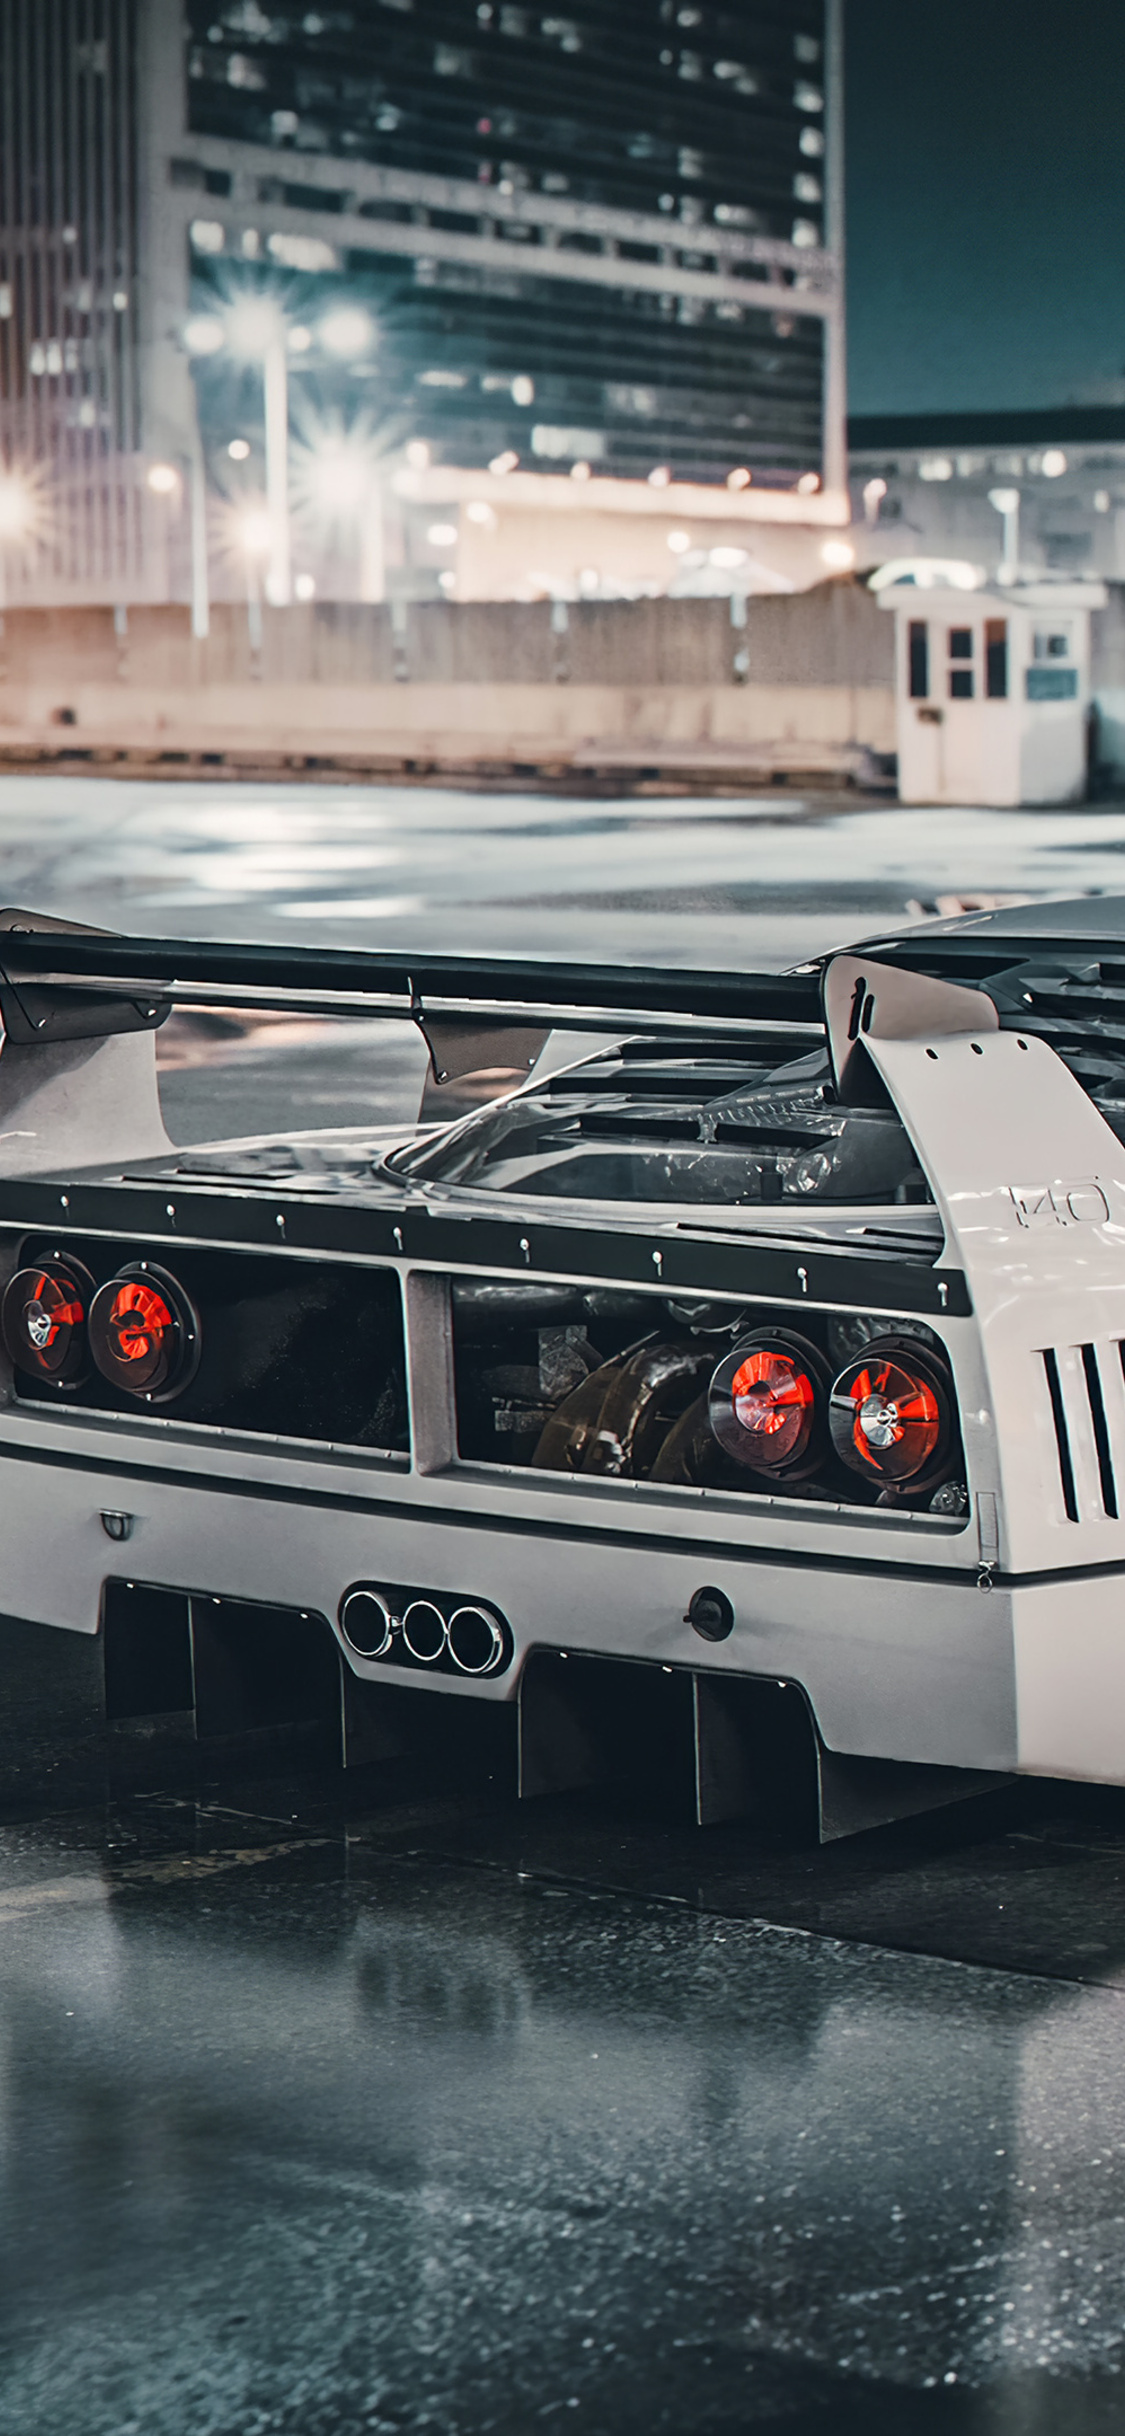 1125x2436 Ferrari F40 Lm 4k Iphone Xs Iphone 10 Iphone X Hd 4k Wallpapers Images Backgrounds Photos And Pictures